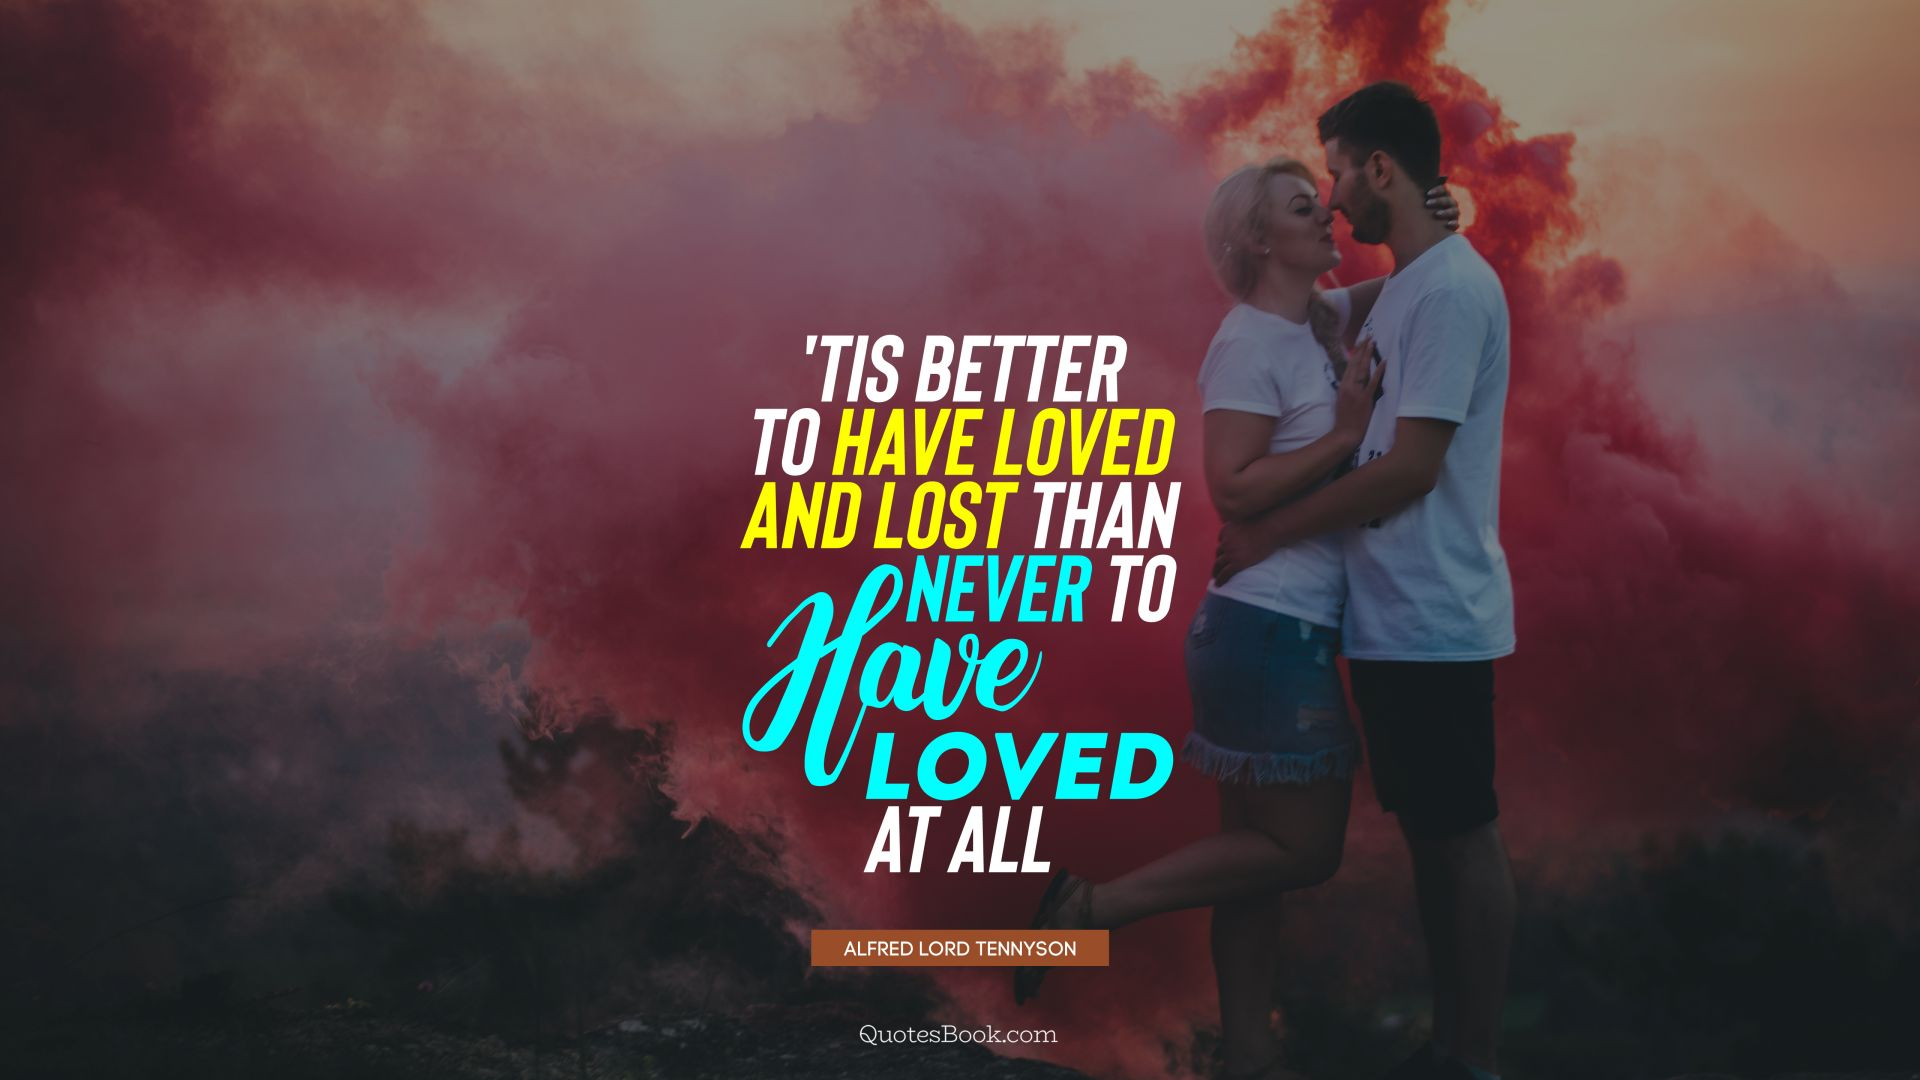 'Tis better to have loved and lost than never to have loved at all. - Quote by Alfred Lord Tennyson